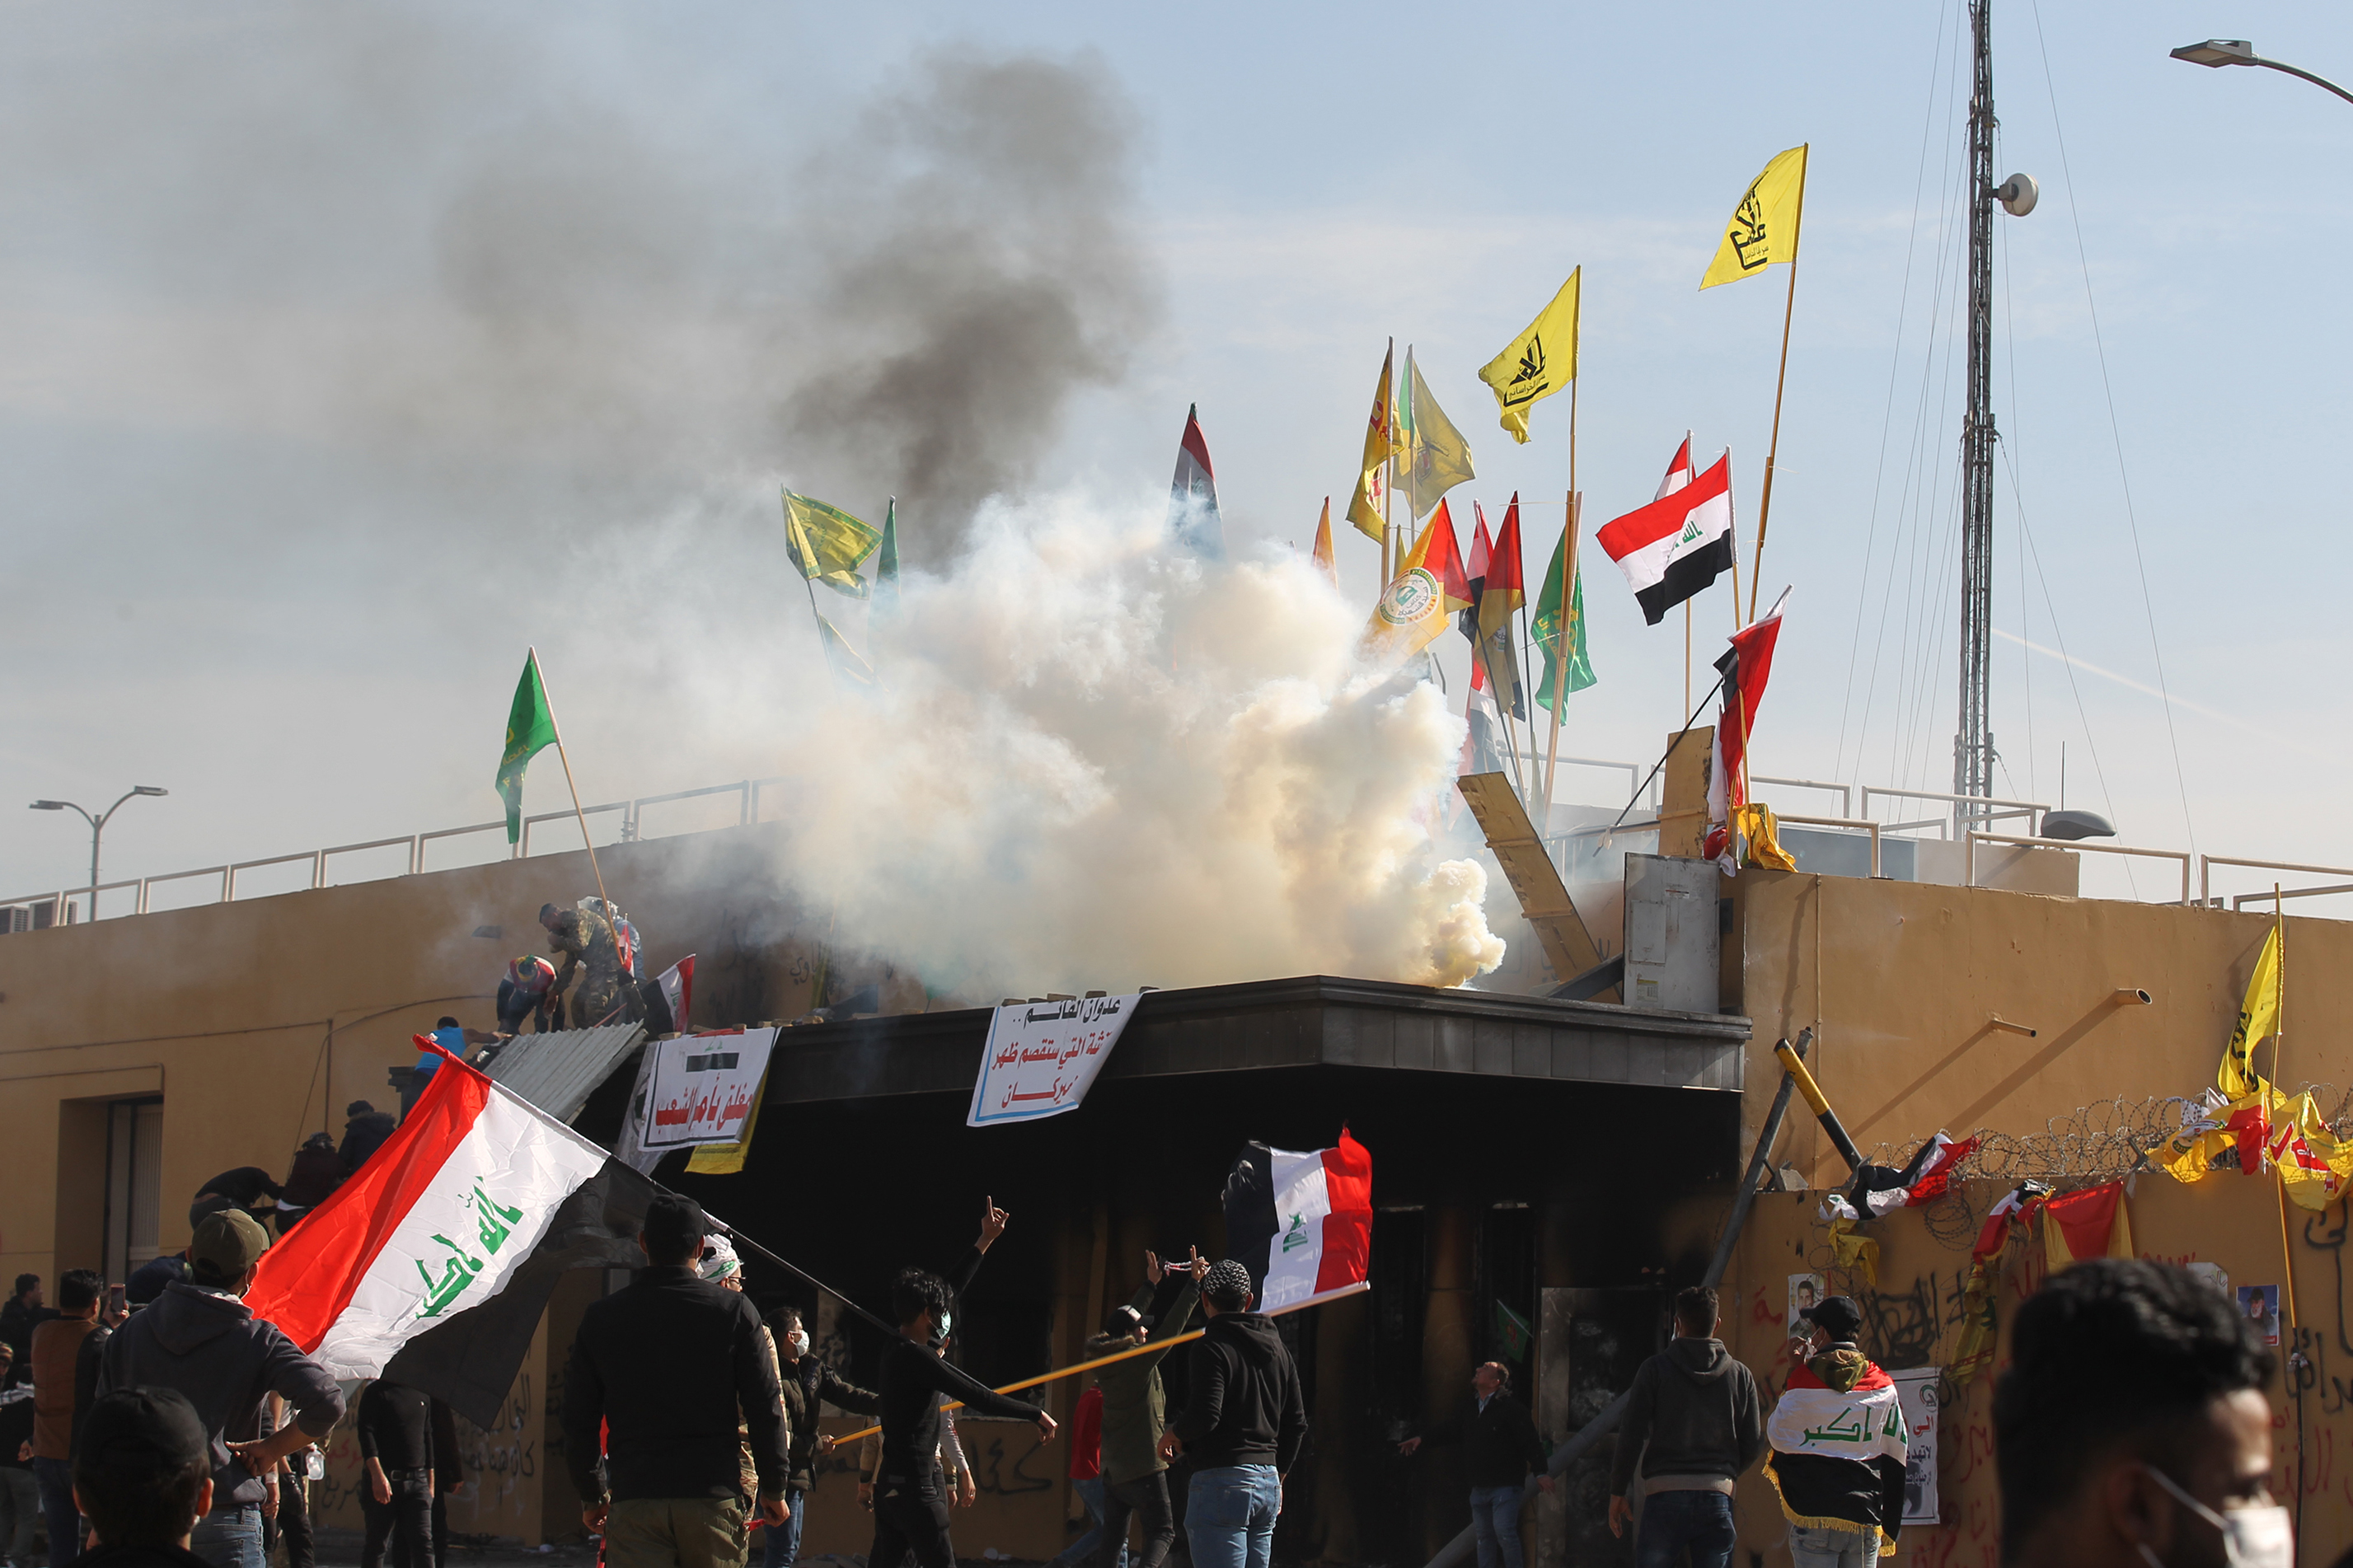 US forces (unseen) fire teargas canisters at supporters and members of the Hashed al-Shaabi paramilitary force during a demonstration outside the US embassy in the Iraqi capital Baghdad on January 1, 2020. (AHMAD AL-RUBAYE/AFP via Getty Images)